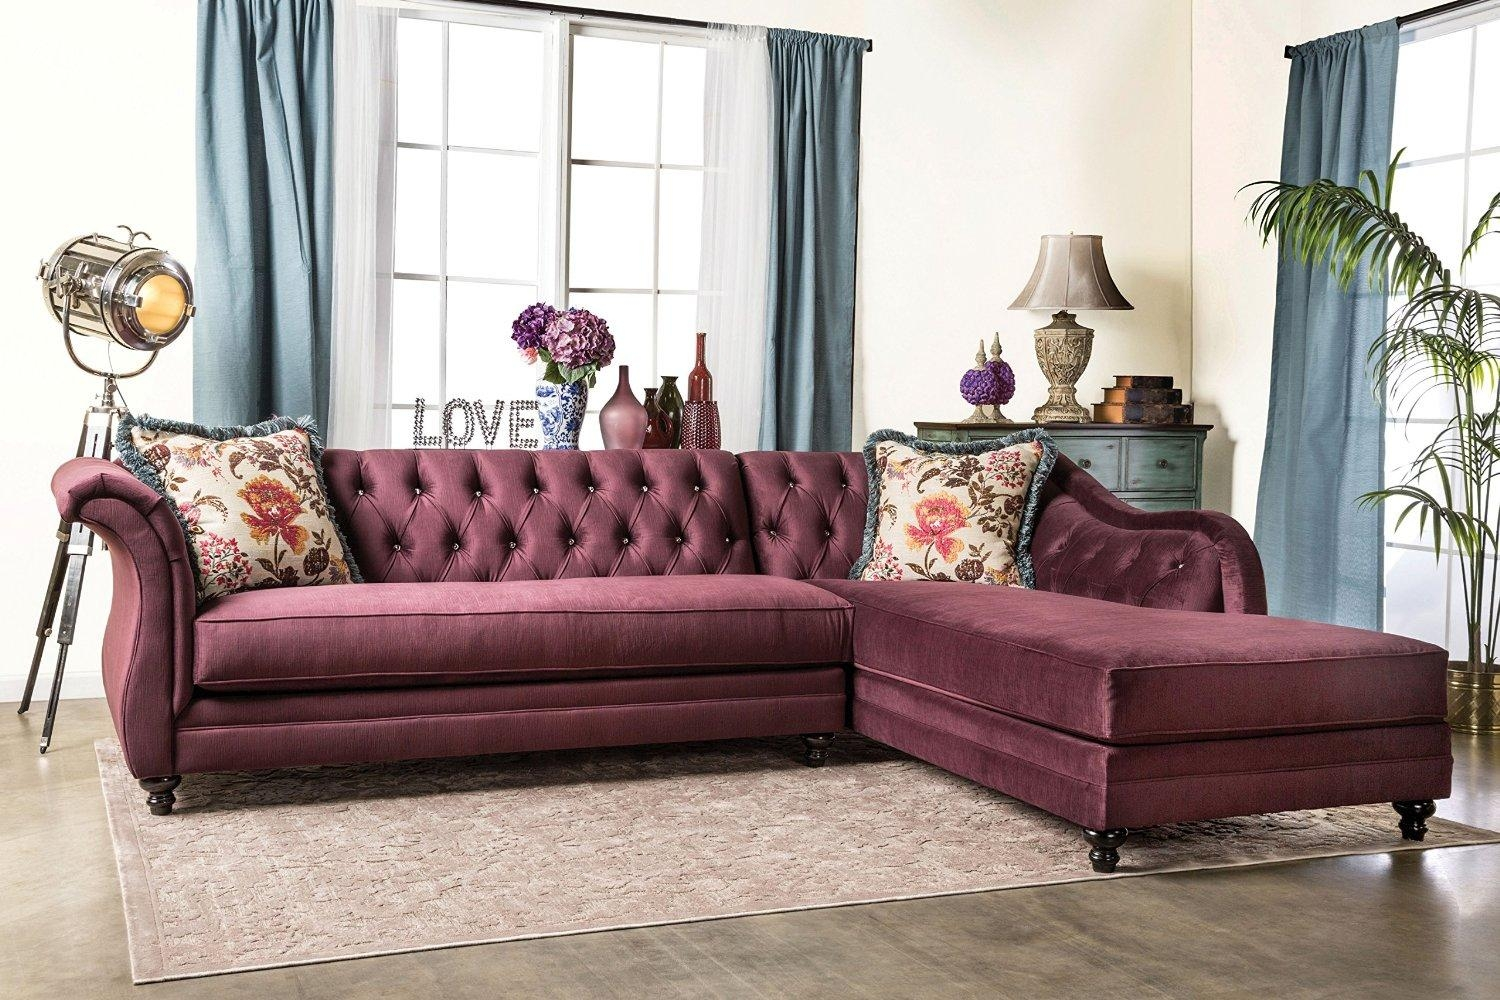 25 Best Chesterfield Sofas To Buy In 2017 In Purple Chesterfield Sofas (View 11 of 20)